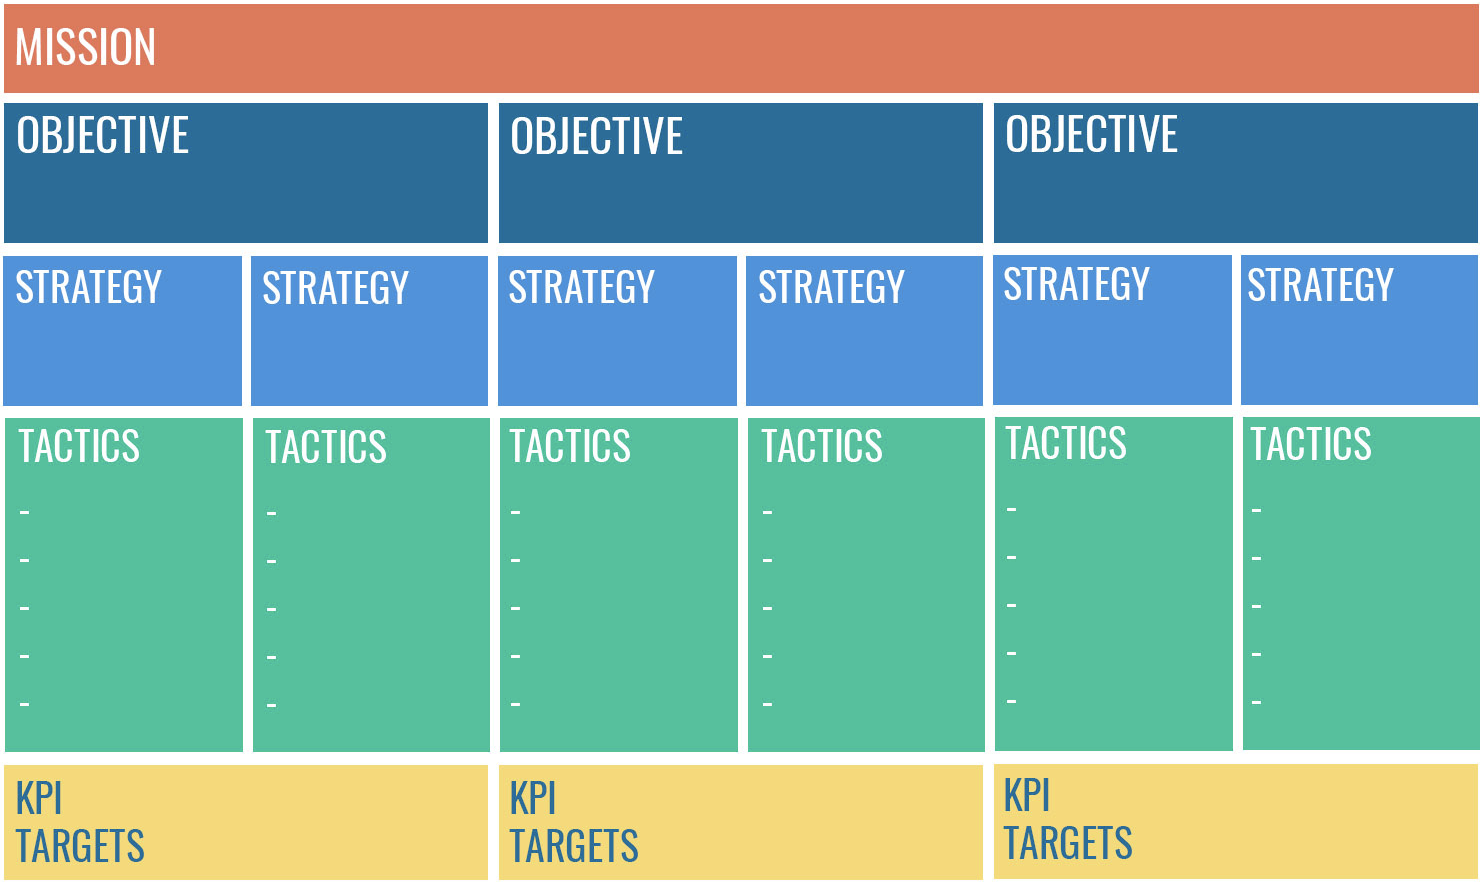 MOST Framework showing how missions, objectives, strategies and tactics play a part and come together